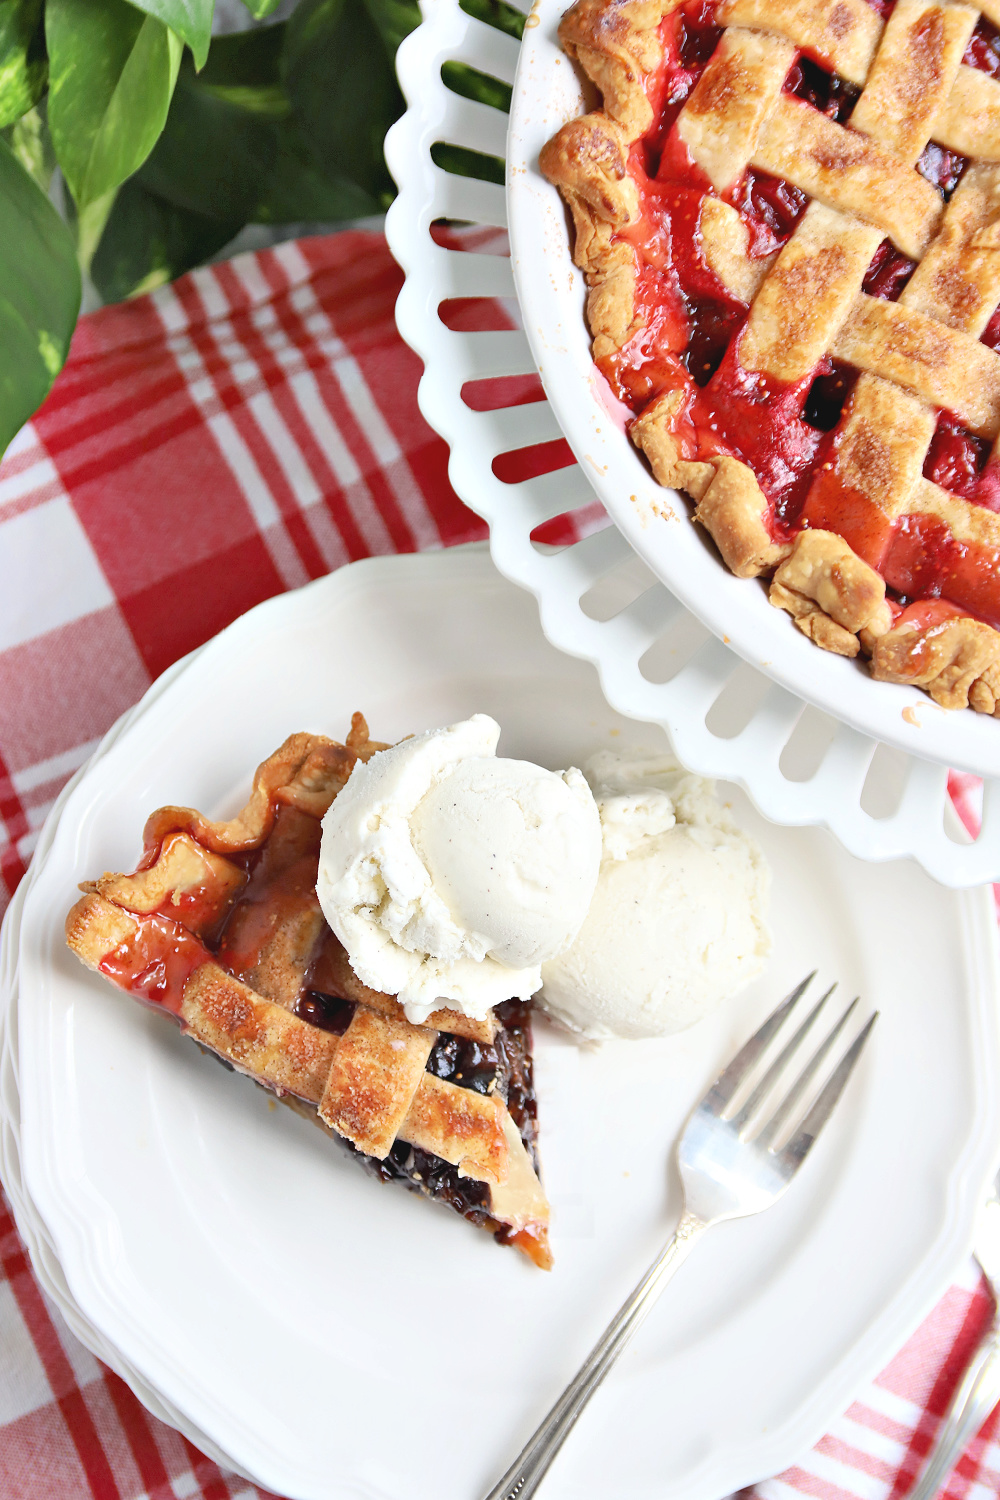 A slice of cranberry and fig pie with the perfect balance of sweet and tart flavors. Easy recipe for this old-fashioned dessert with how-to instructions for making the pretty lattice top crust.